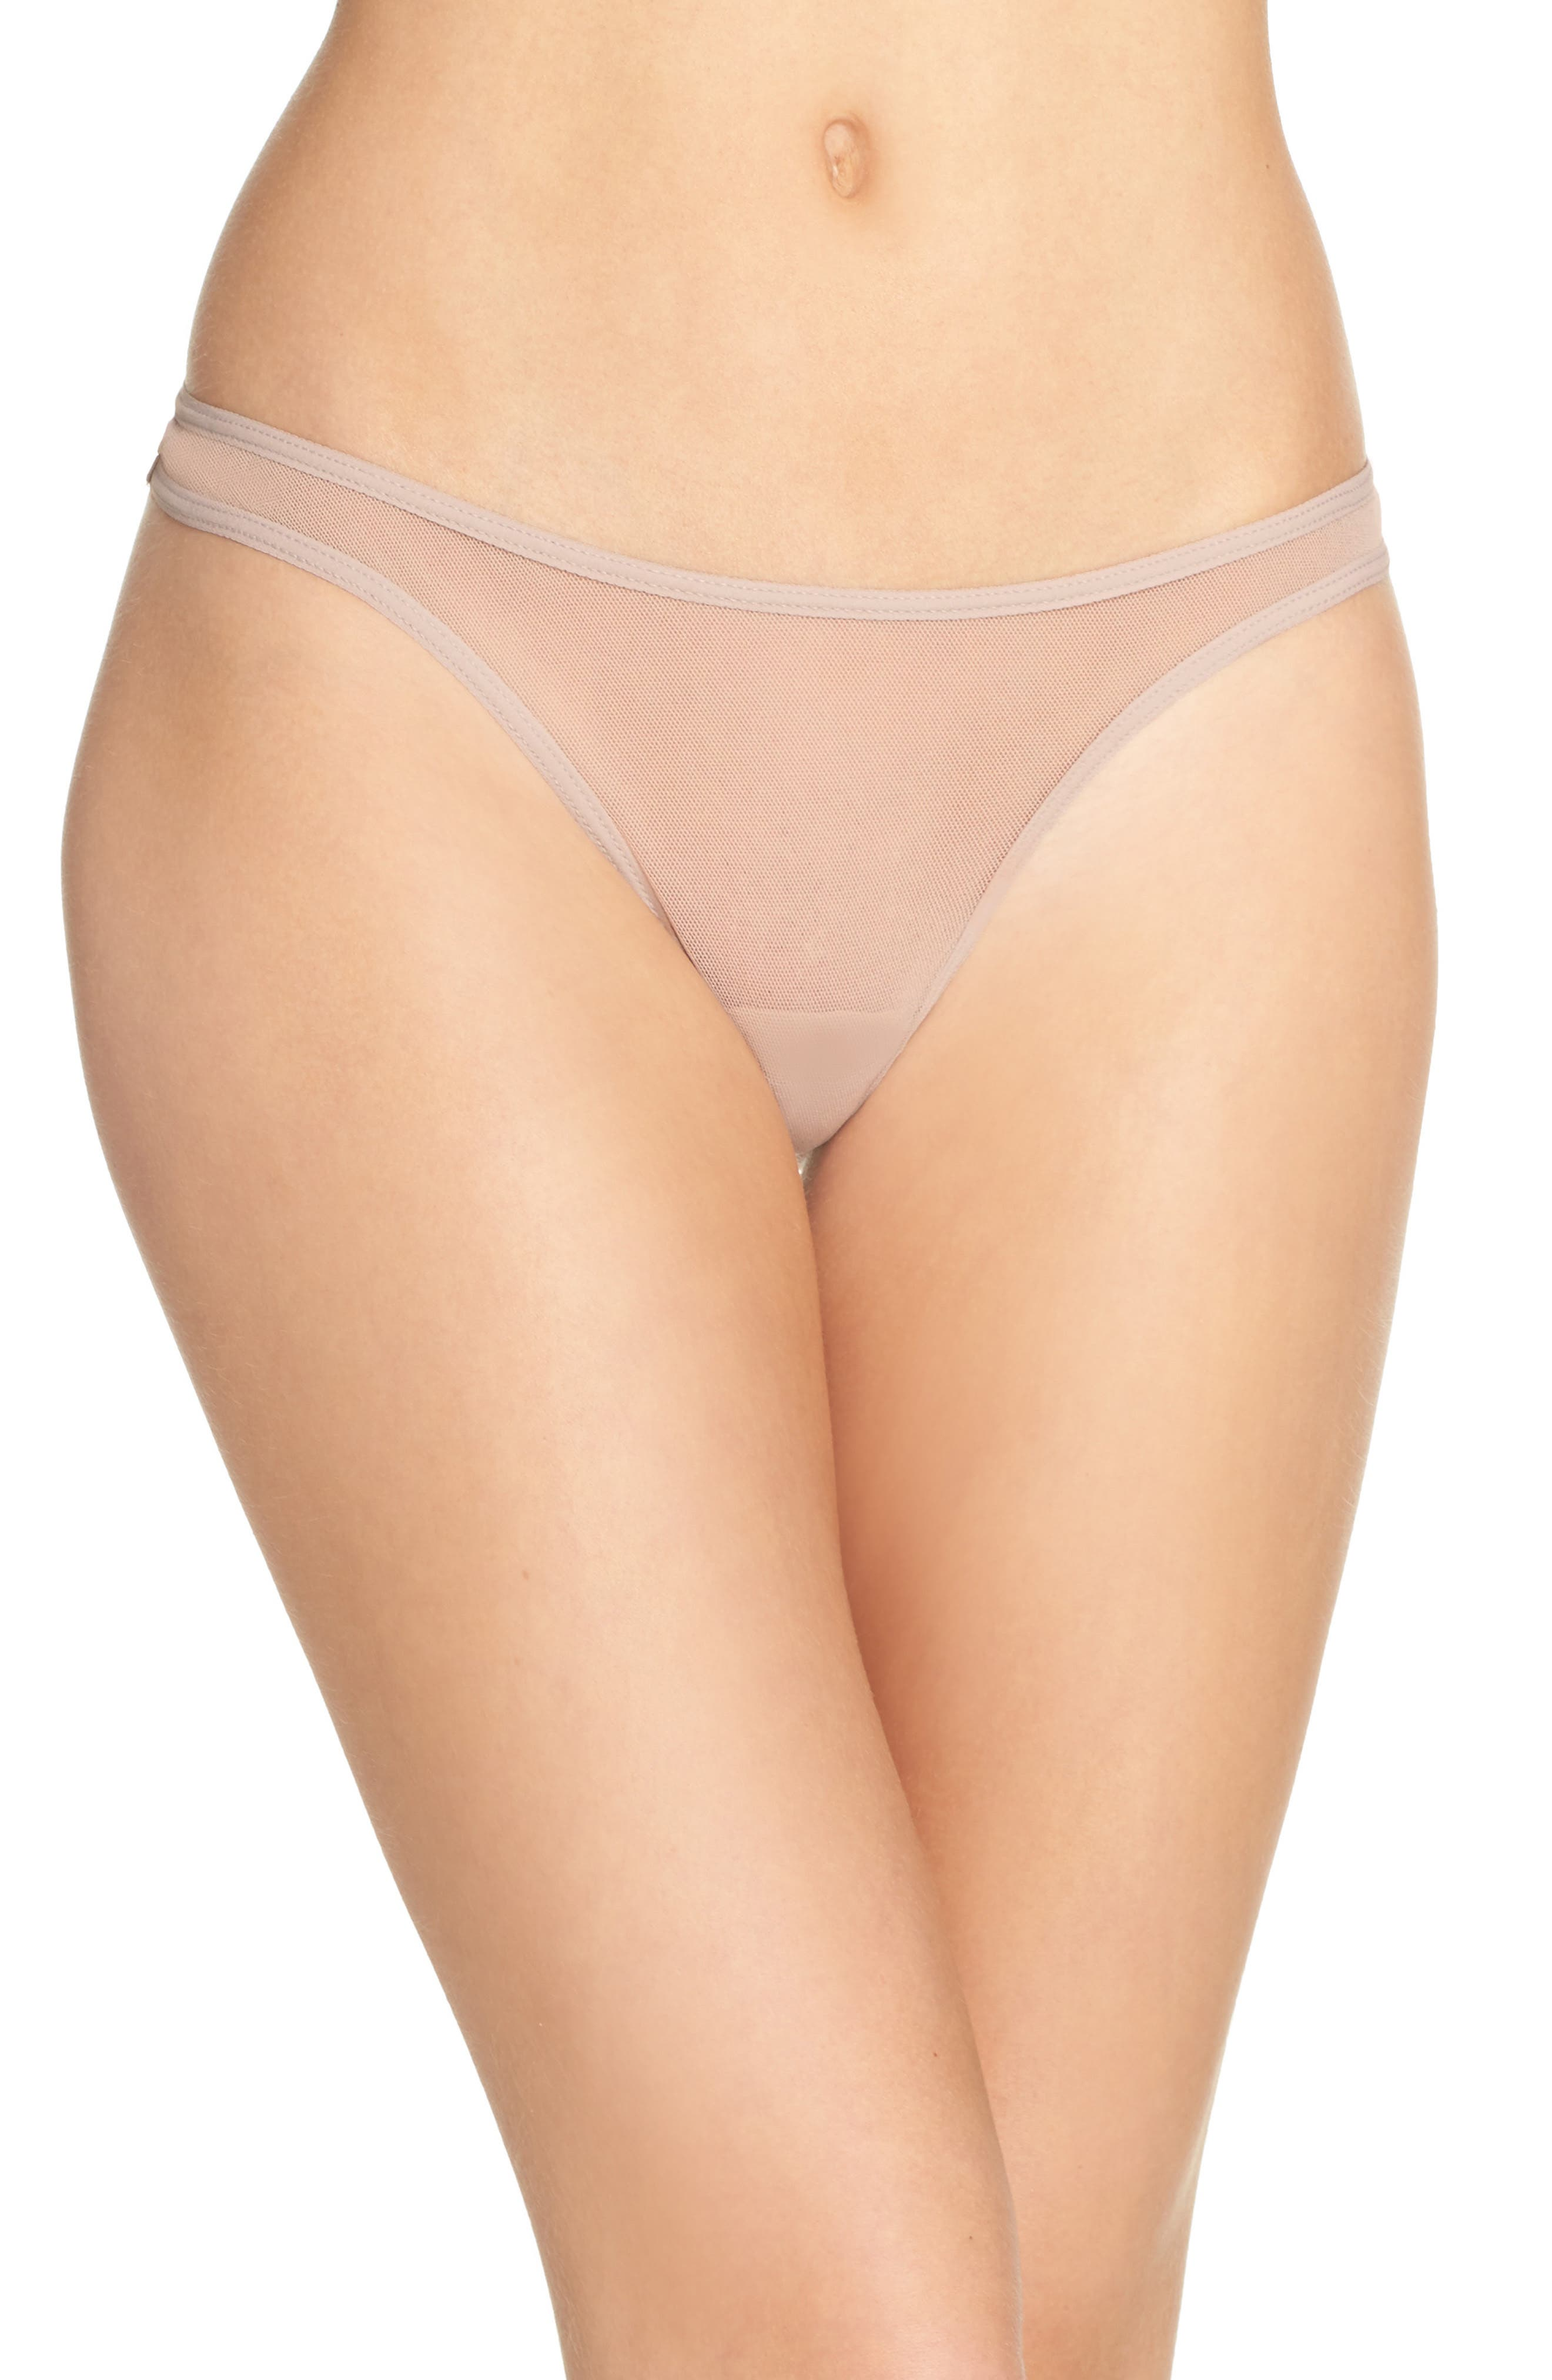 Cosabella 'Soire' Low Rise Mesh Thong